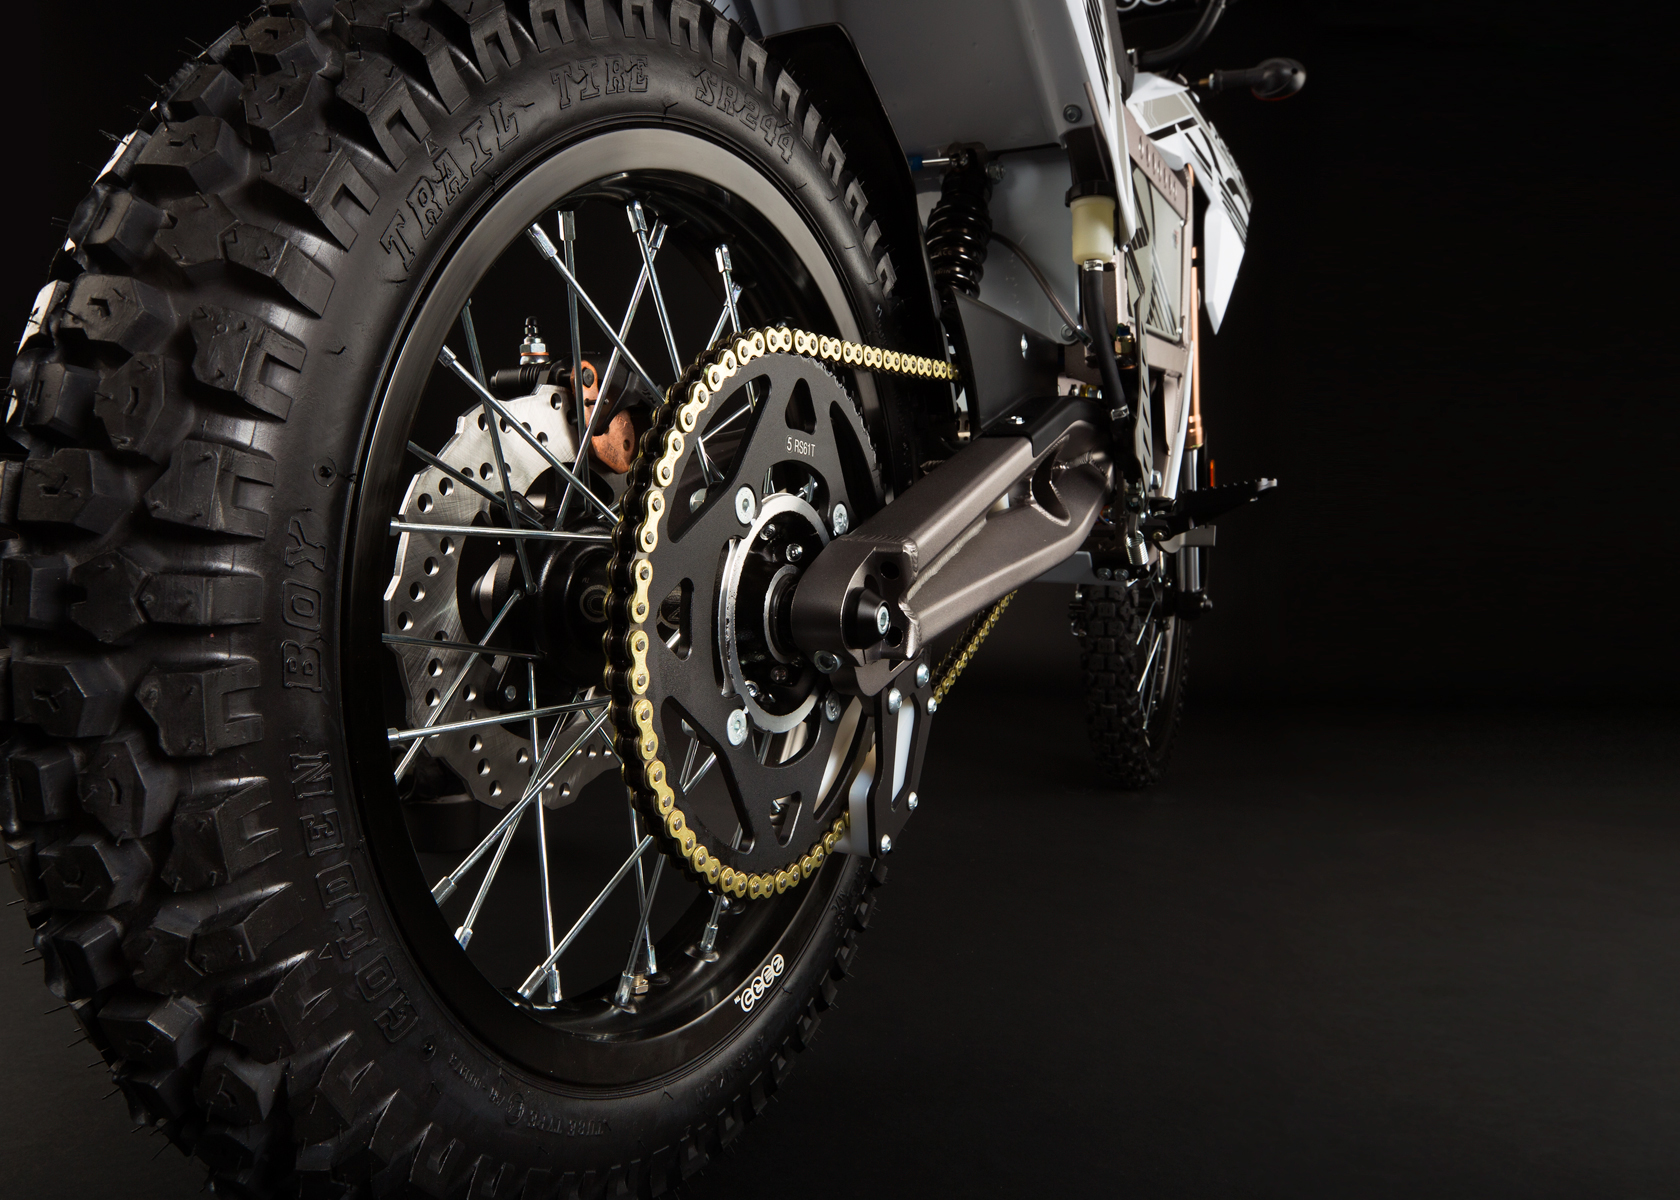 '.2012 Zero X Electric Motorcycle: Back Tire.'